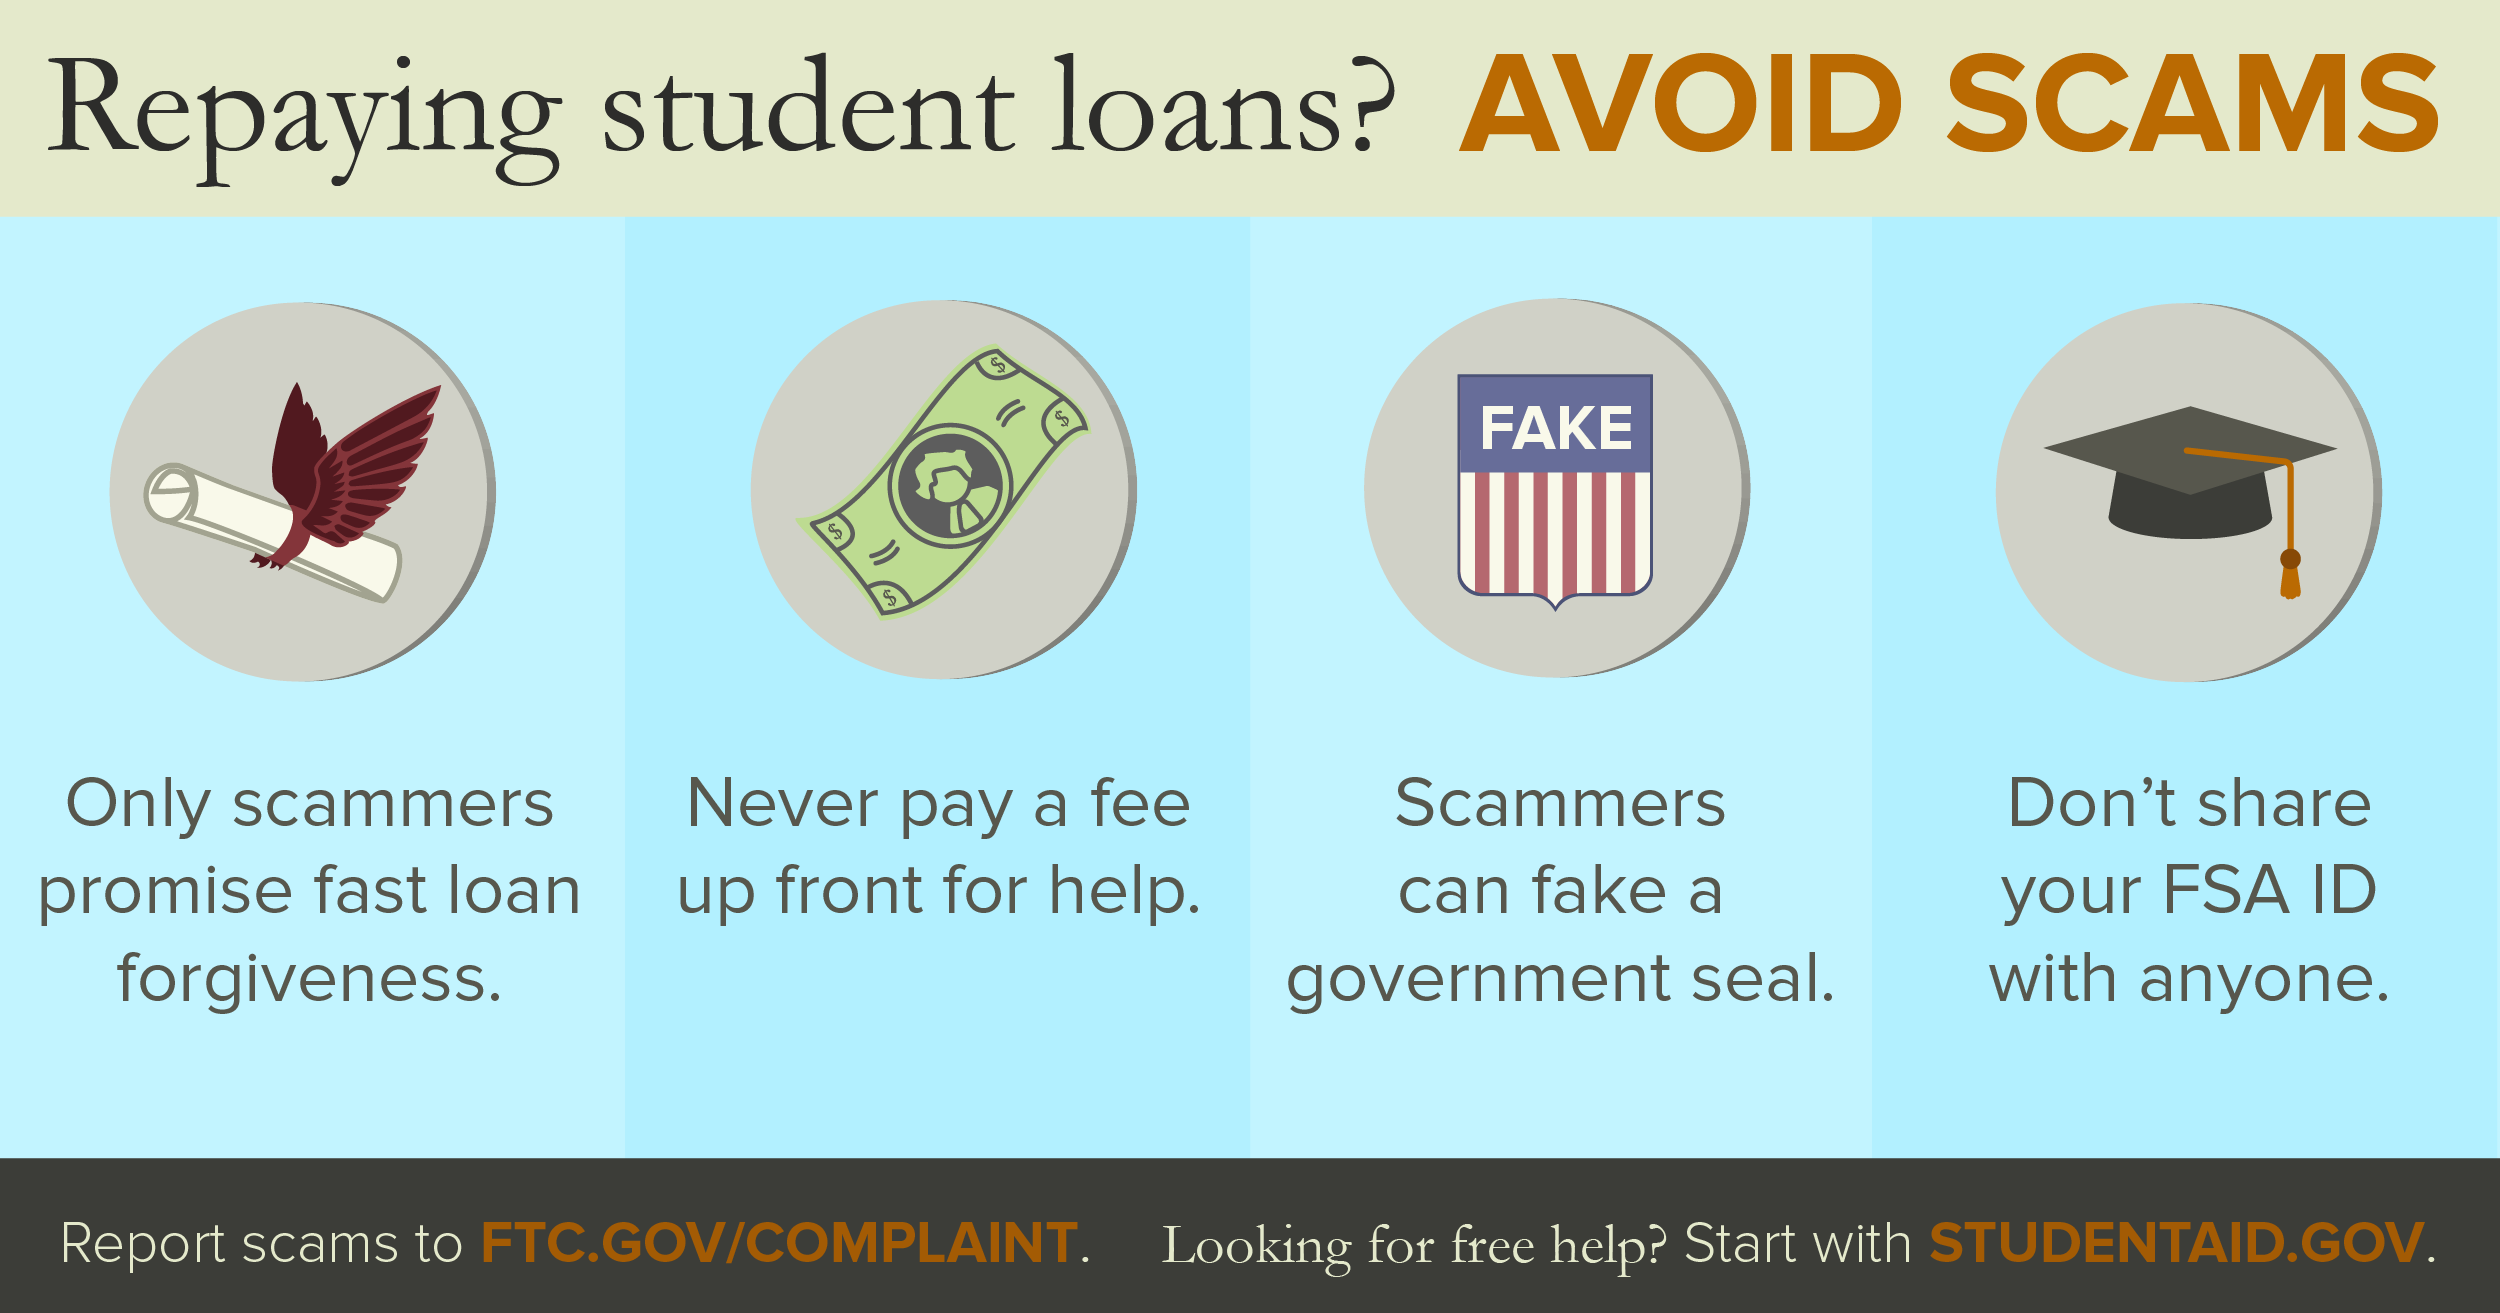 Graphic: Repaying student loans? Avoid Scams with these tips.